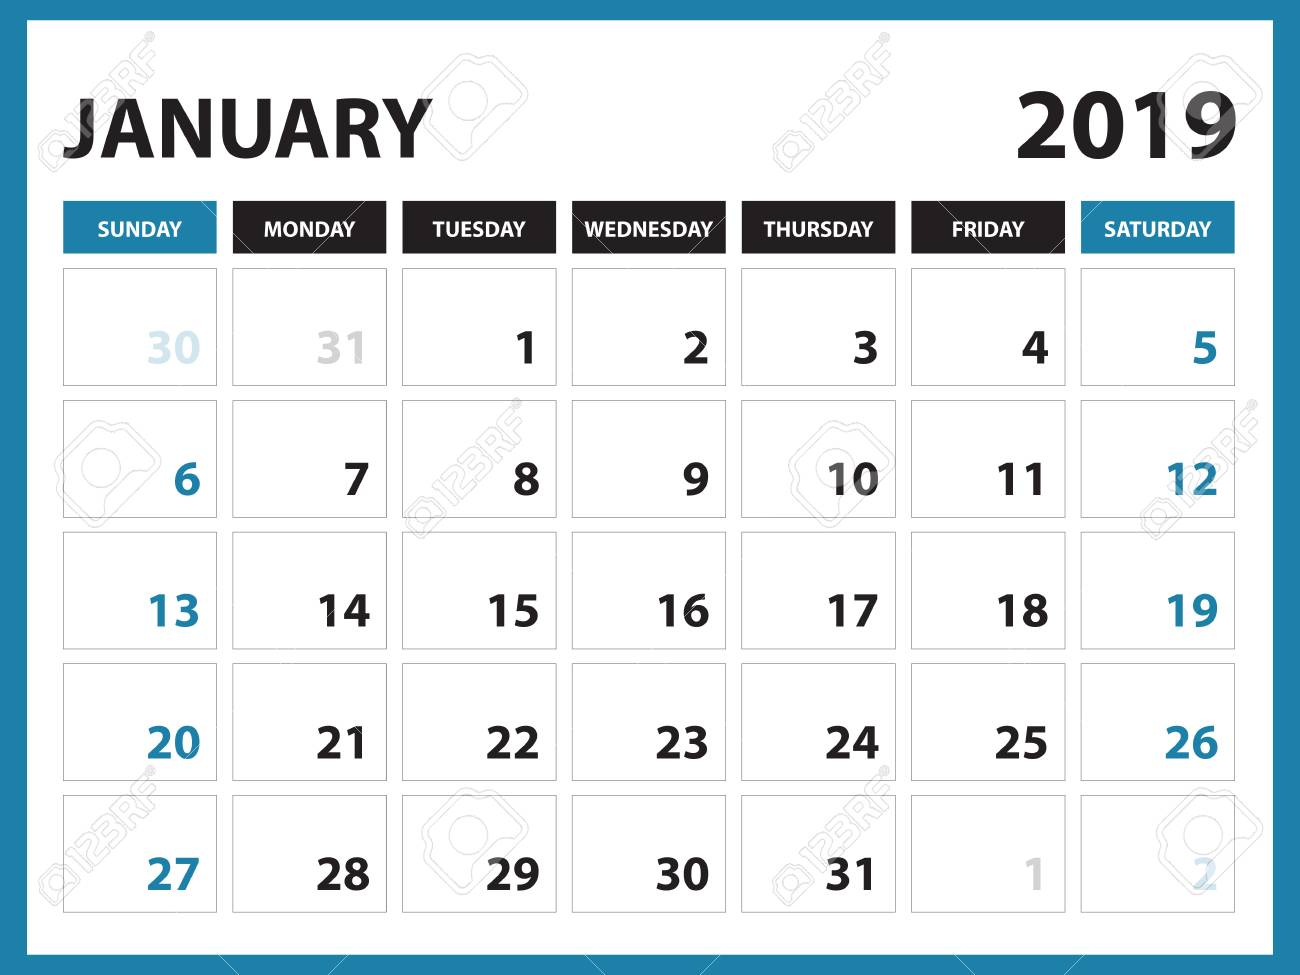 photograph relating to January Printable Calender named Table calendar for January 2019 template, Printable calendar,..